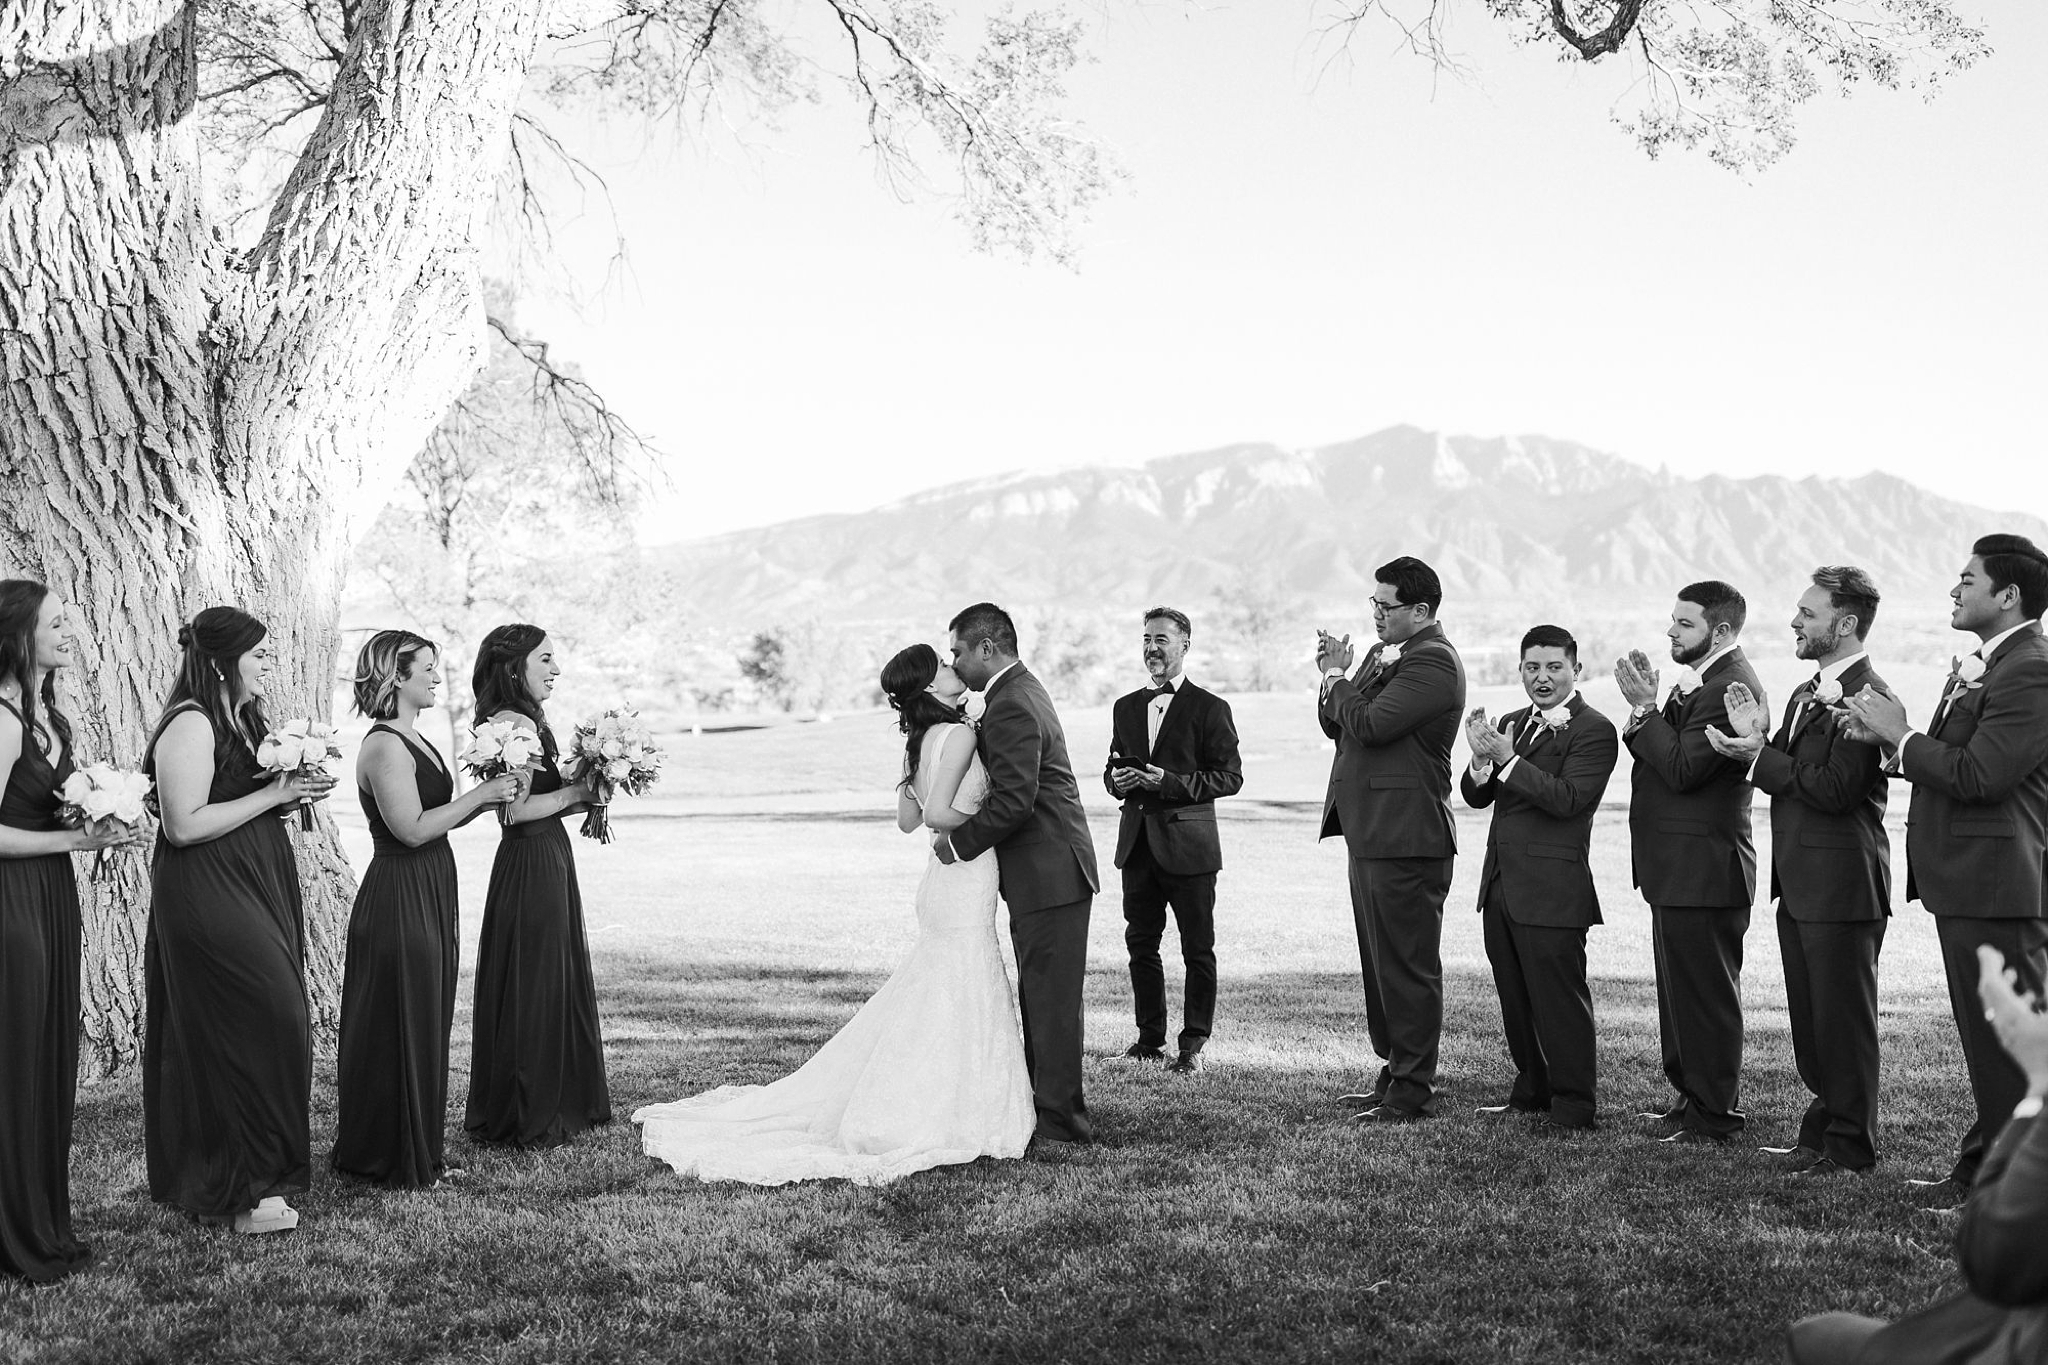 Alicia+lucia+photography+-+albuquerque+wedding+photographer+-+santa+fe+wedding+photography+-+new+mexico+wedding+photographer+-+new+mexico+wedding+-+wedding+vows+-+writing+your+own+vows+-+wedding+inspo_0012.jpg